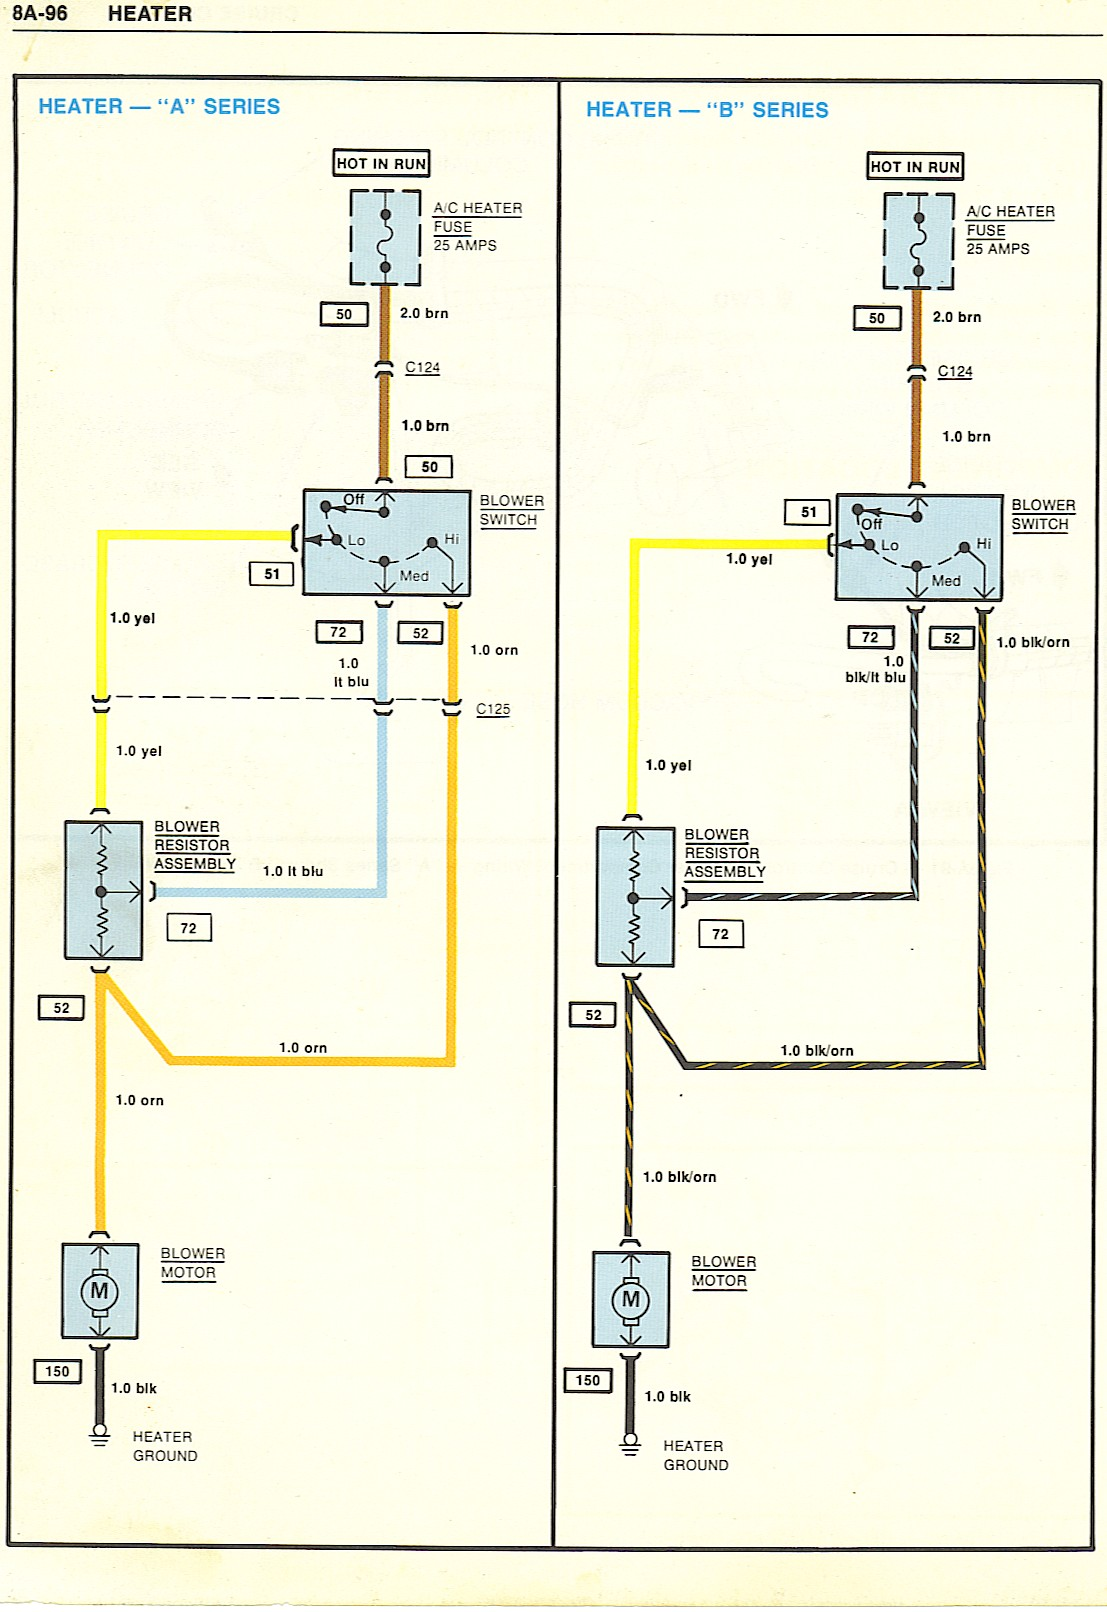 1977 chevrolet truck wiring diagram    wiring    diagrams     wiring    diagrams